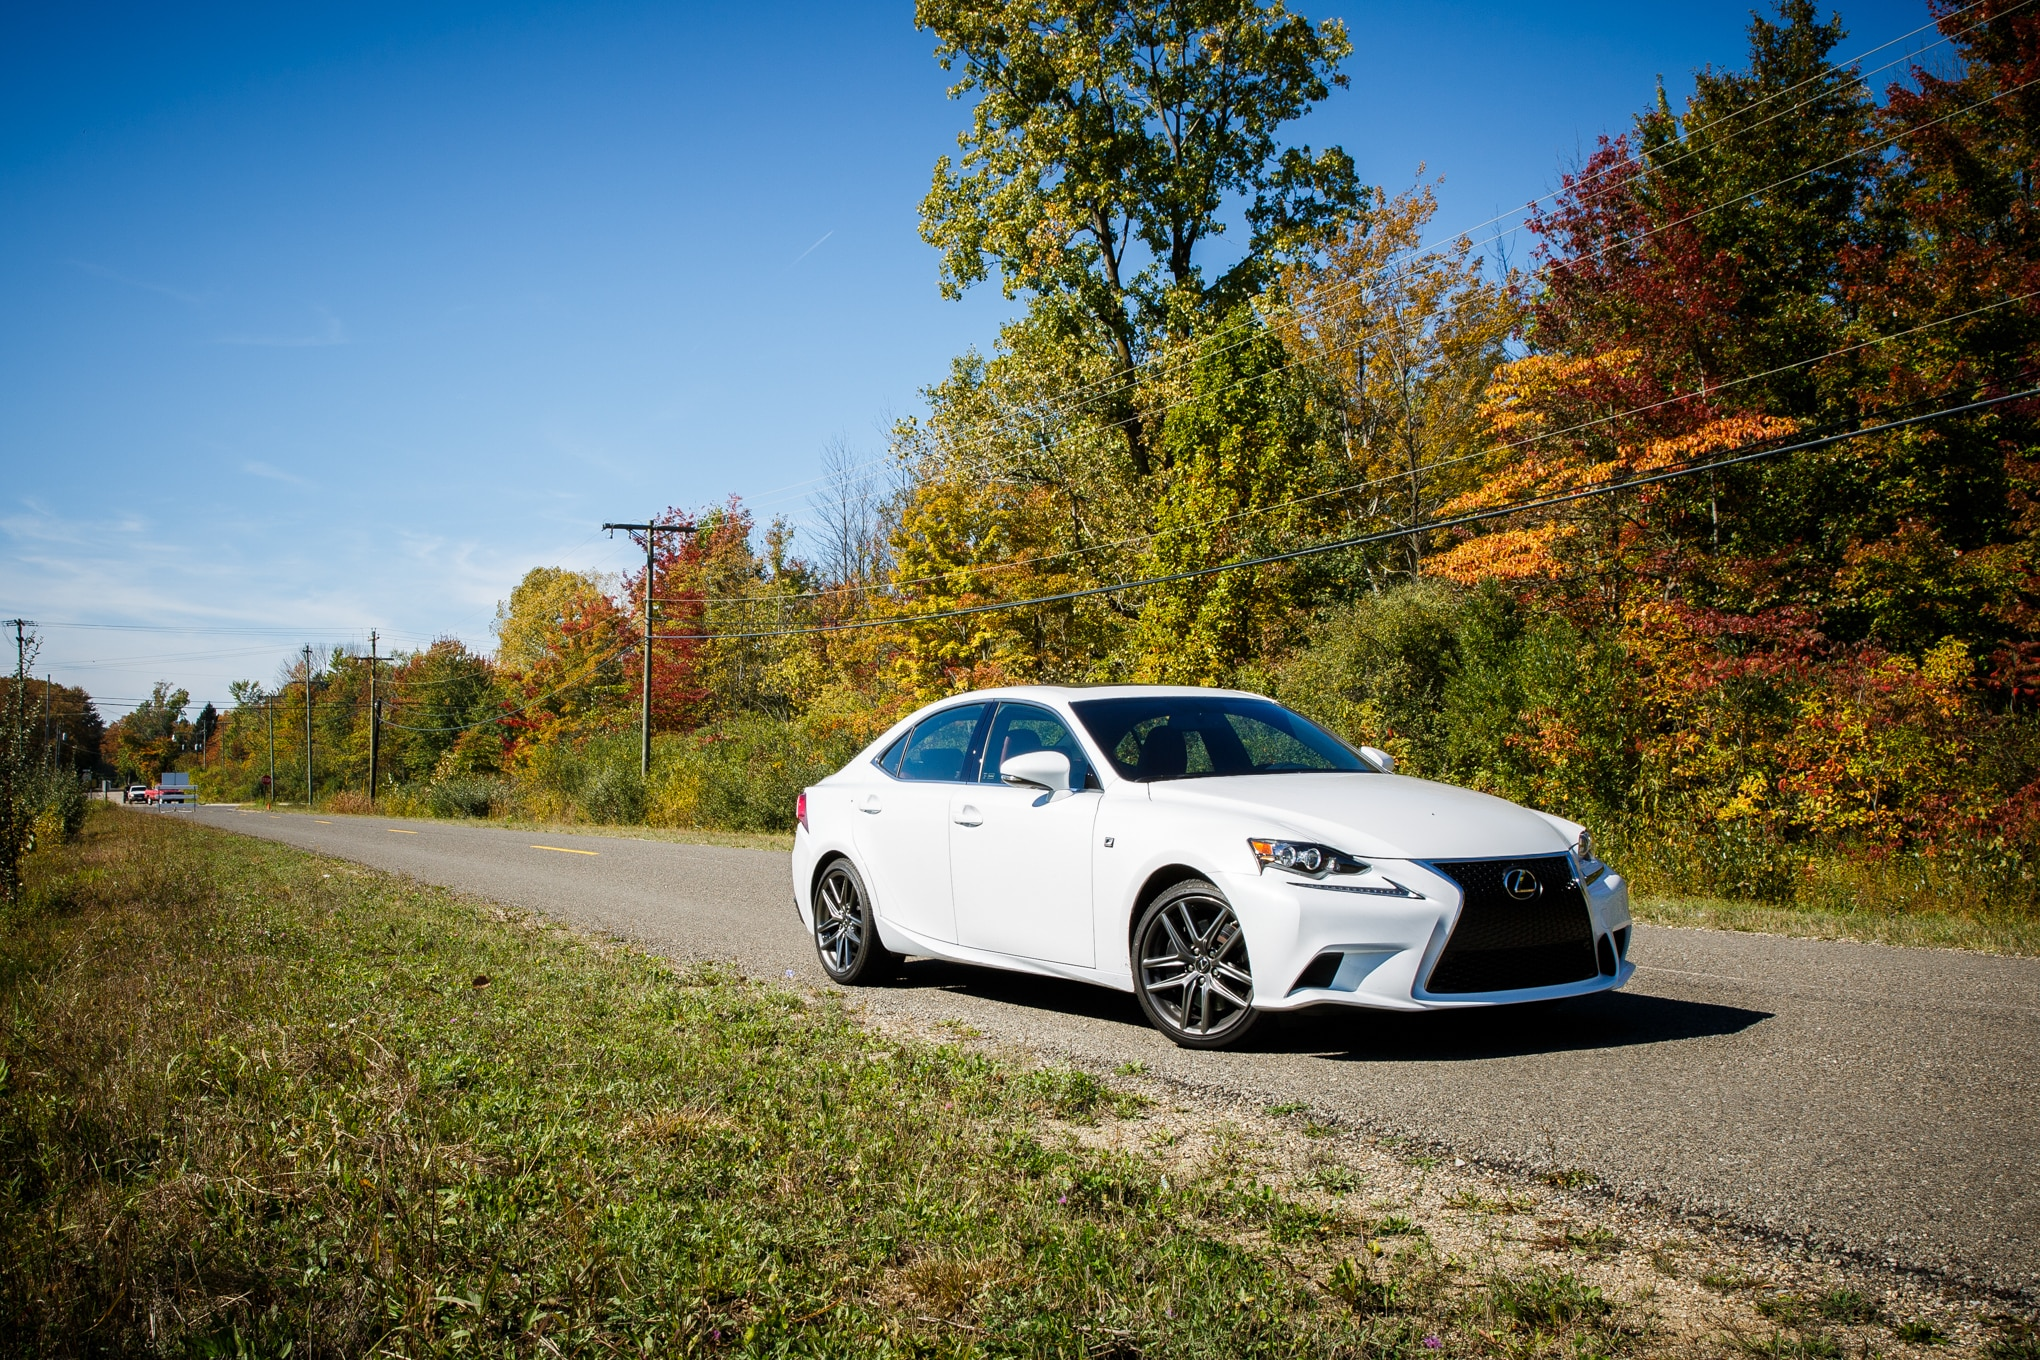 2014 Lexus IS Automobile Of The Year Contenders 12